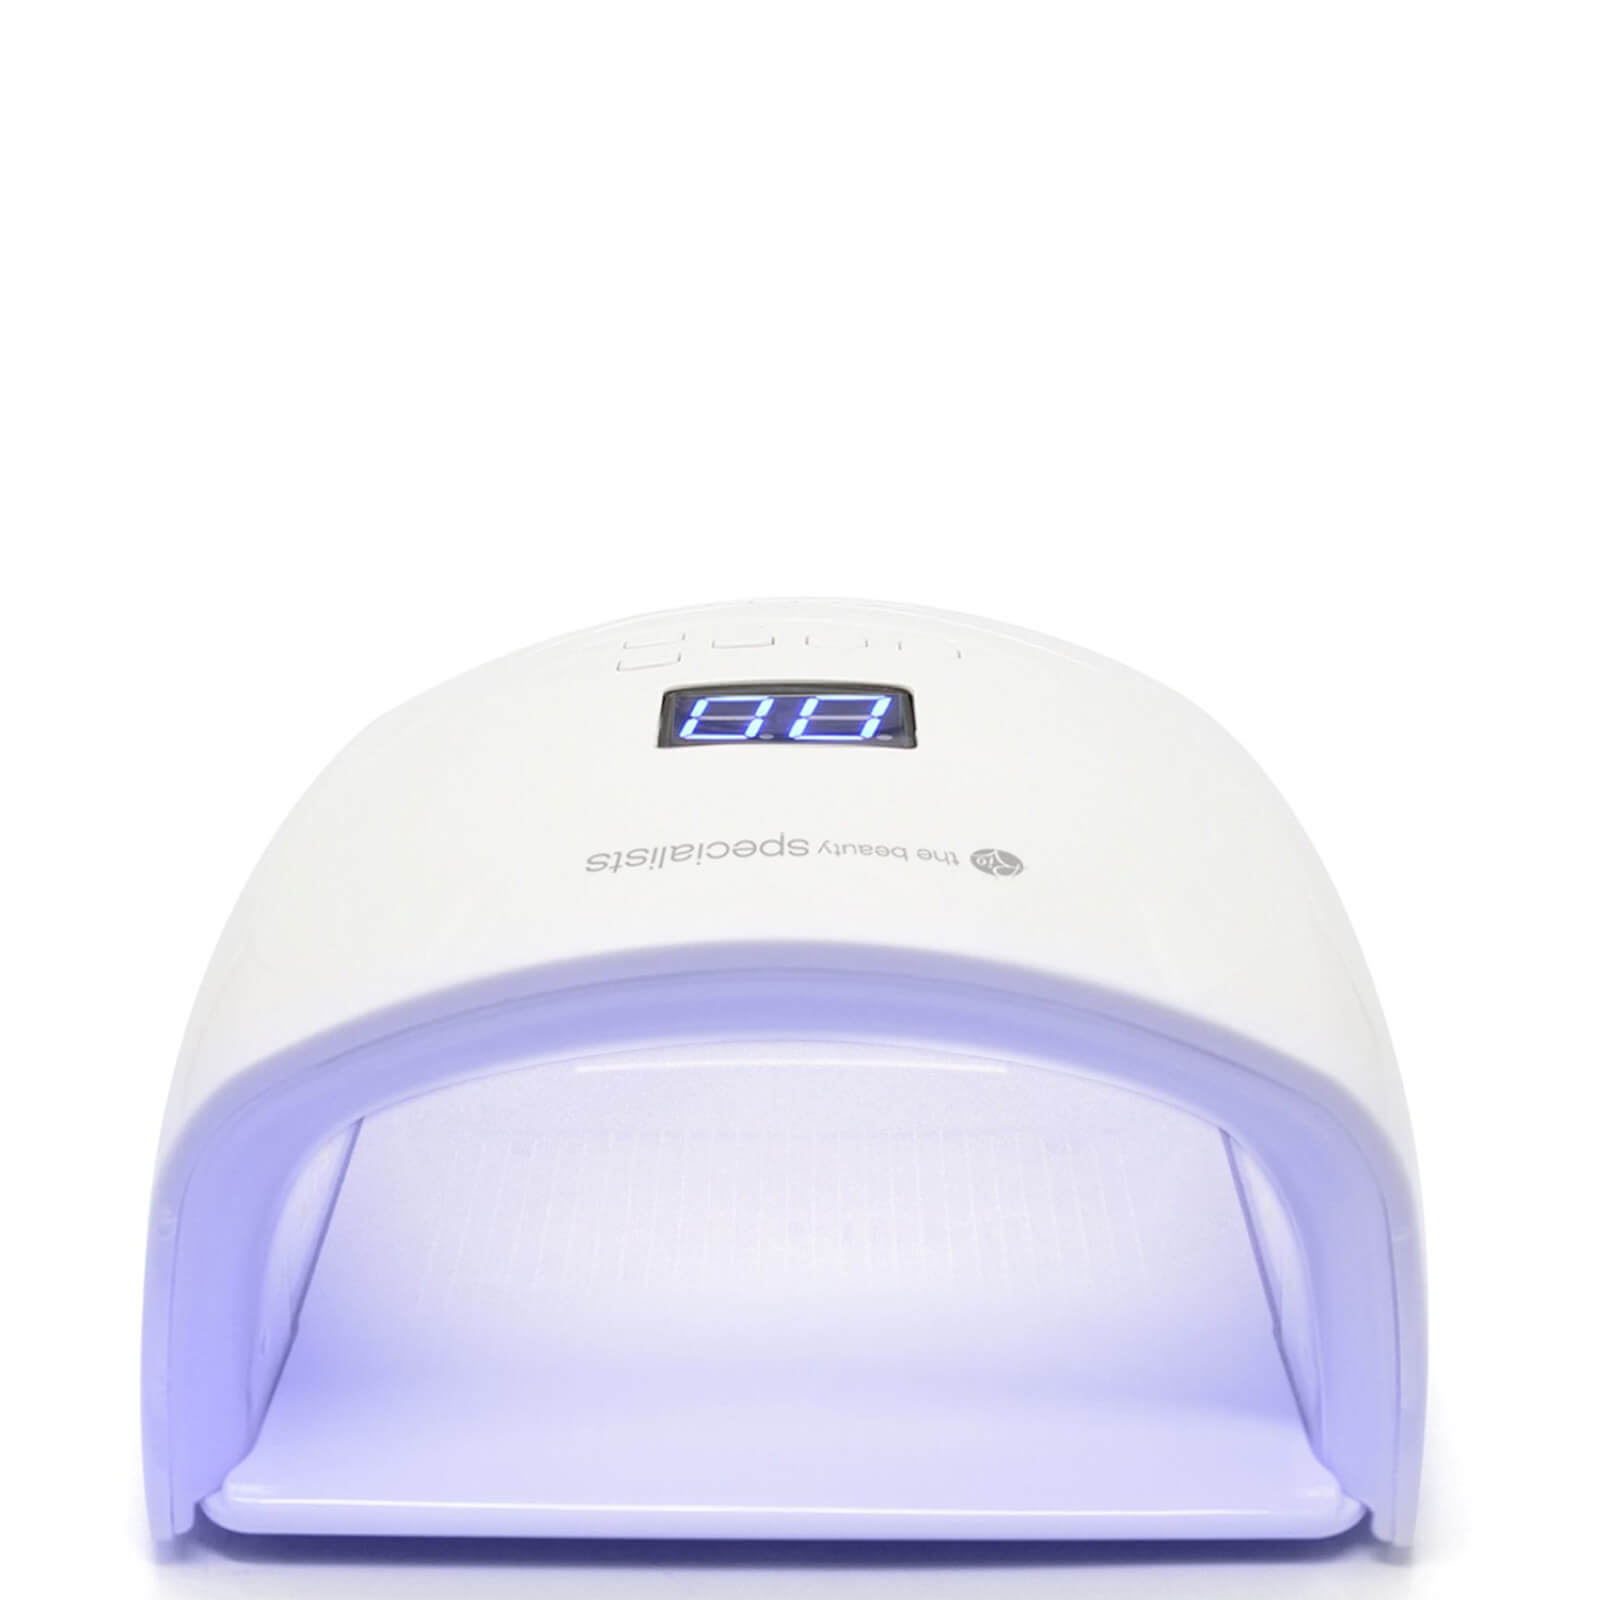 Rio Salon Pro Rechargeable UV and LED Lamp